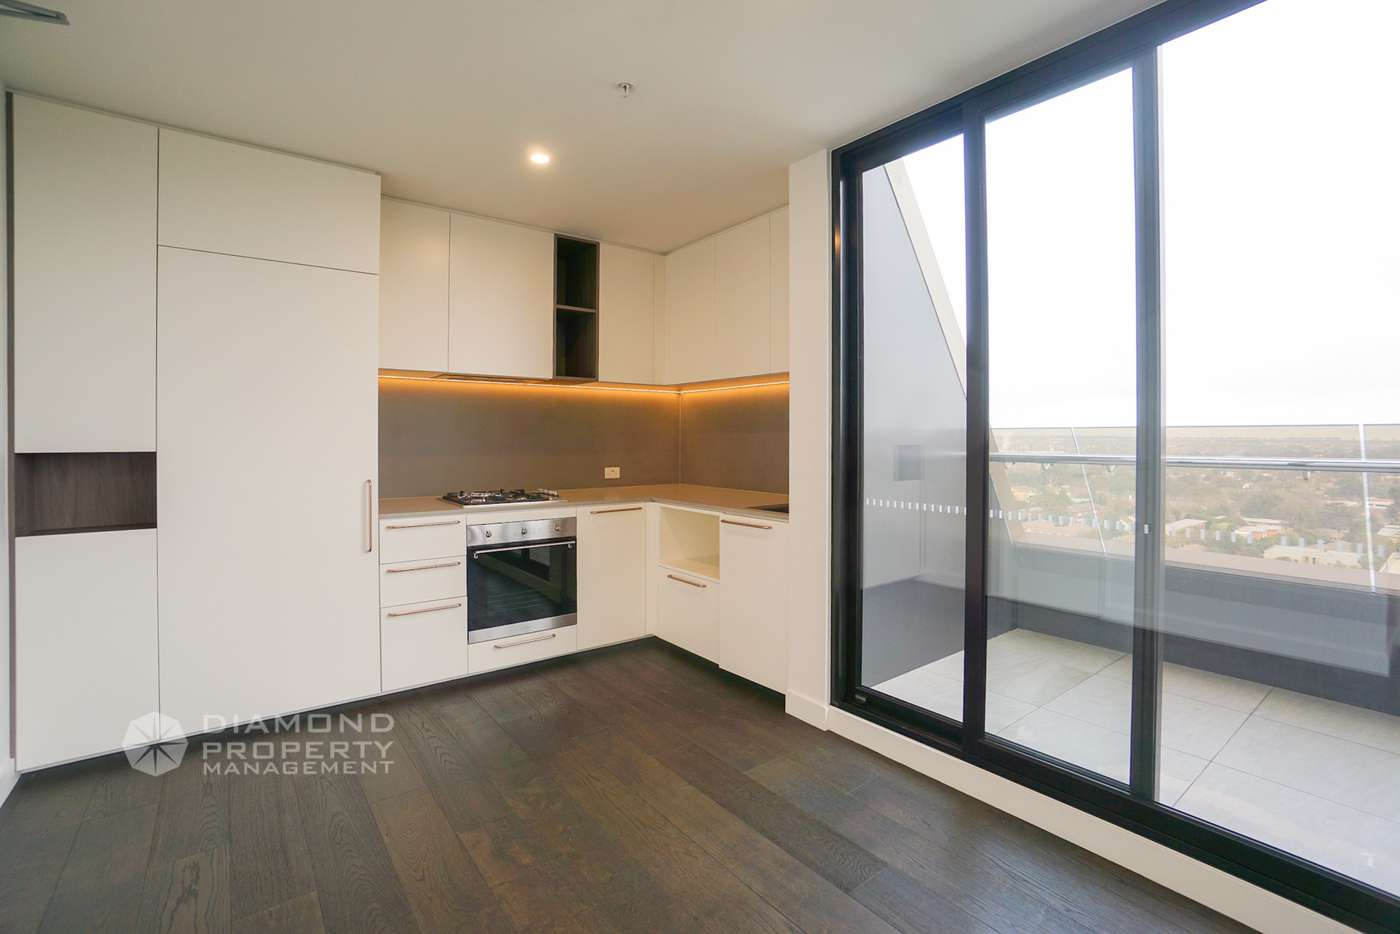 Main view of Homely apartment listing, 1103/9-11 Ellingworth Parade, Box Hill VIC 3128